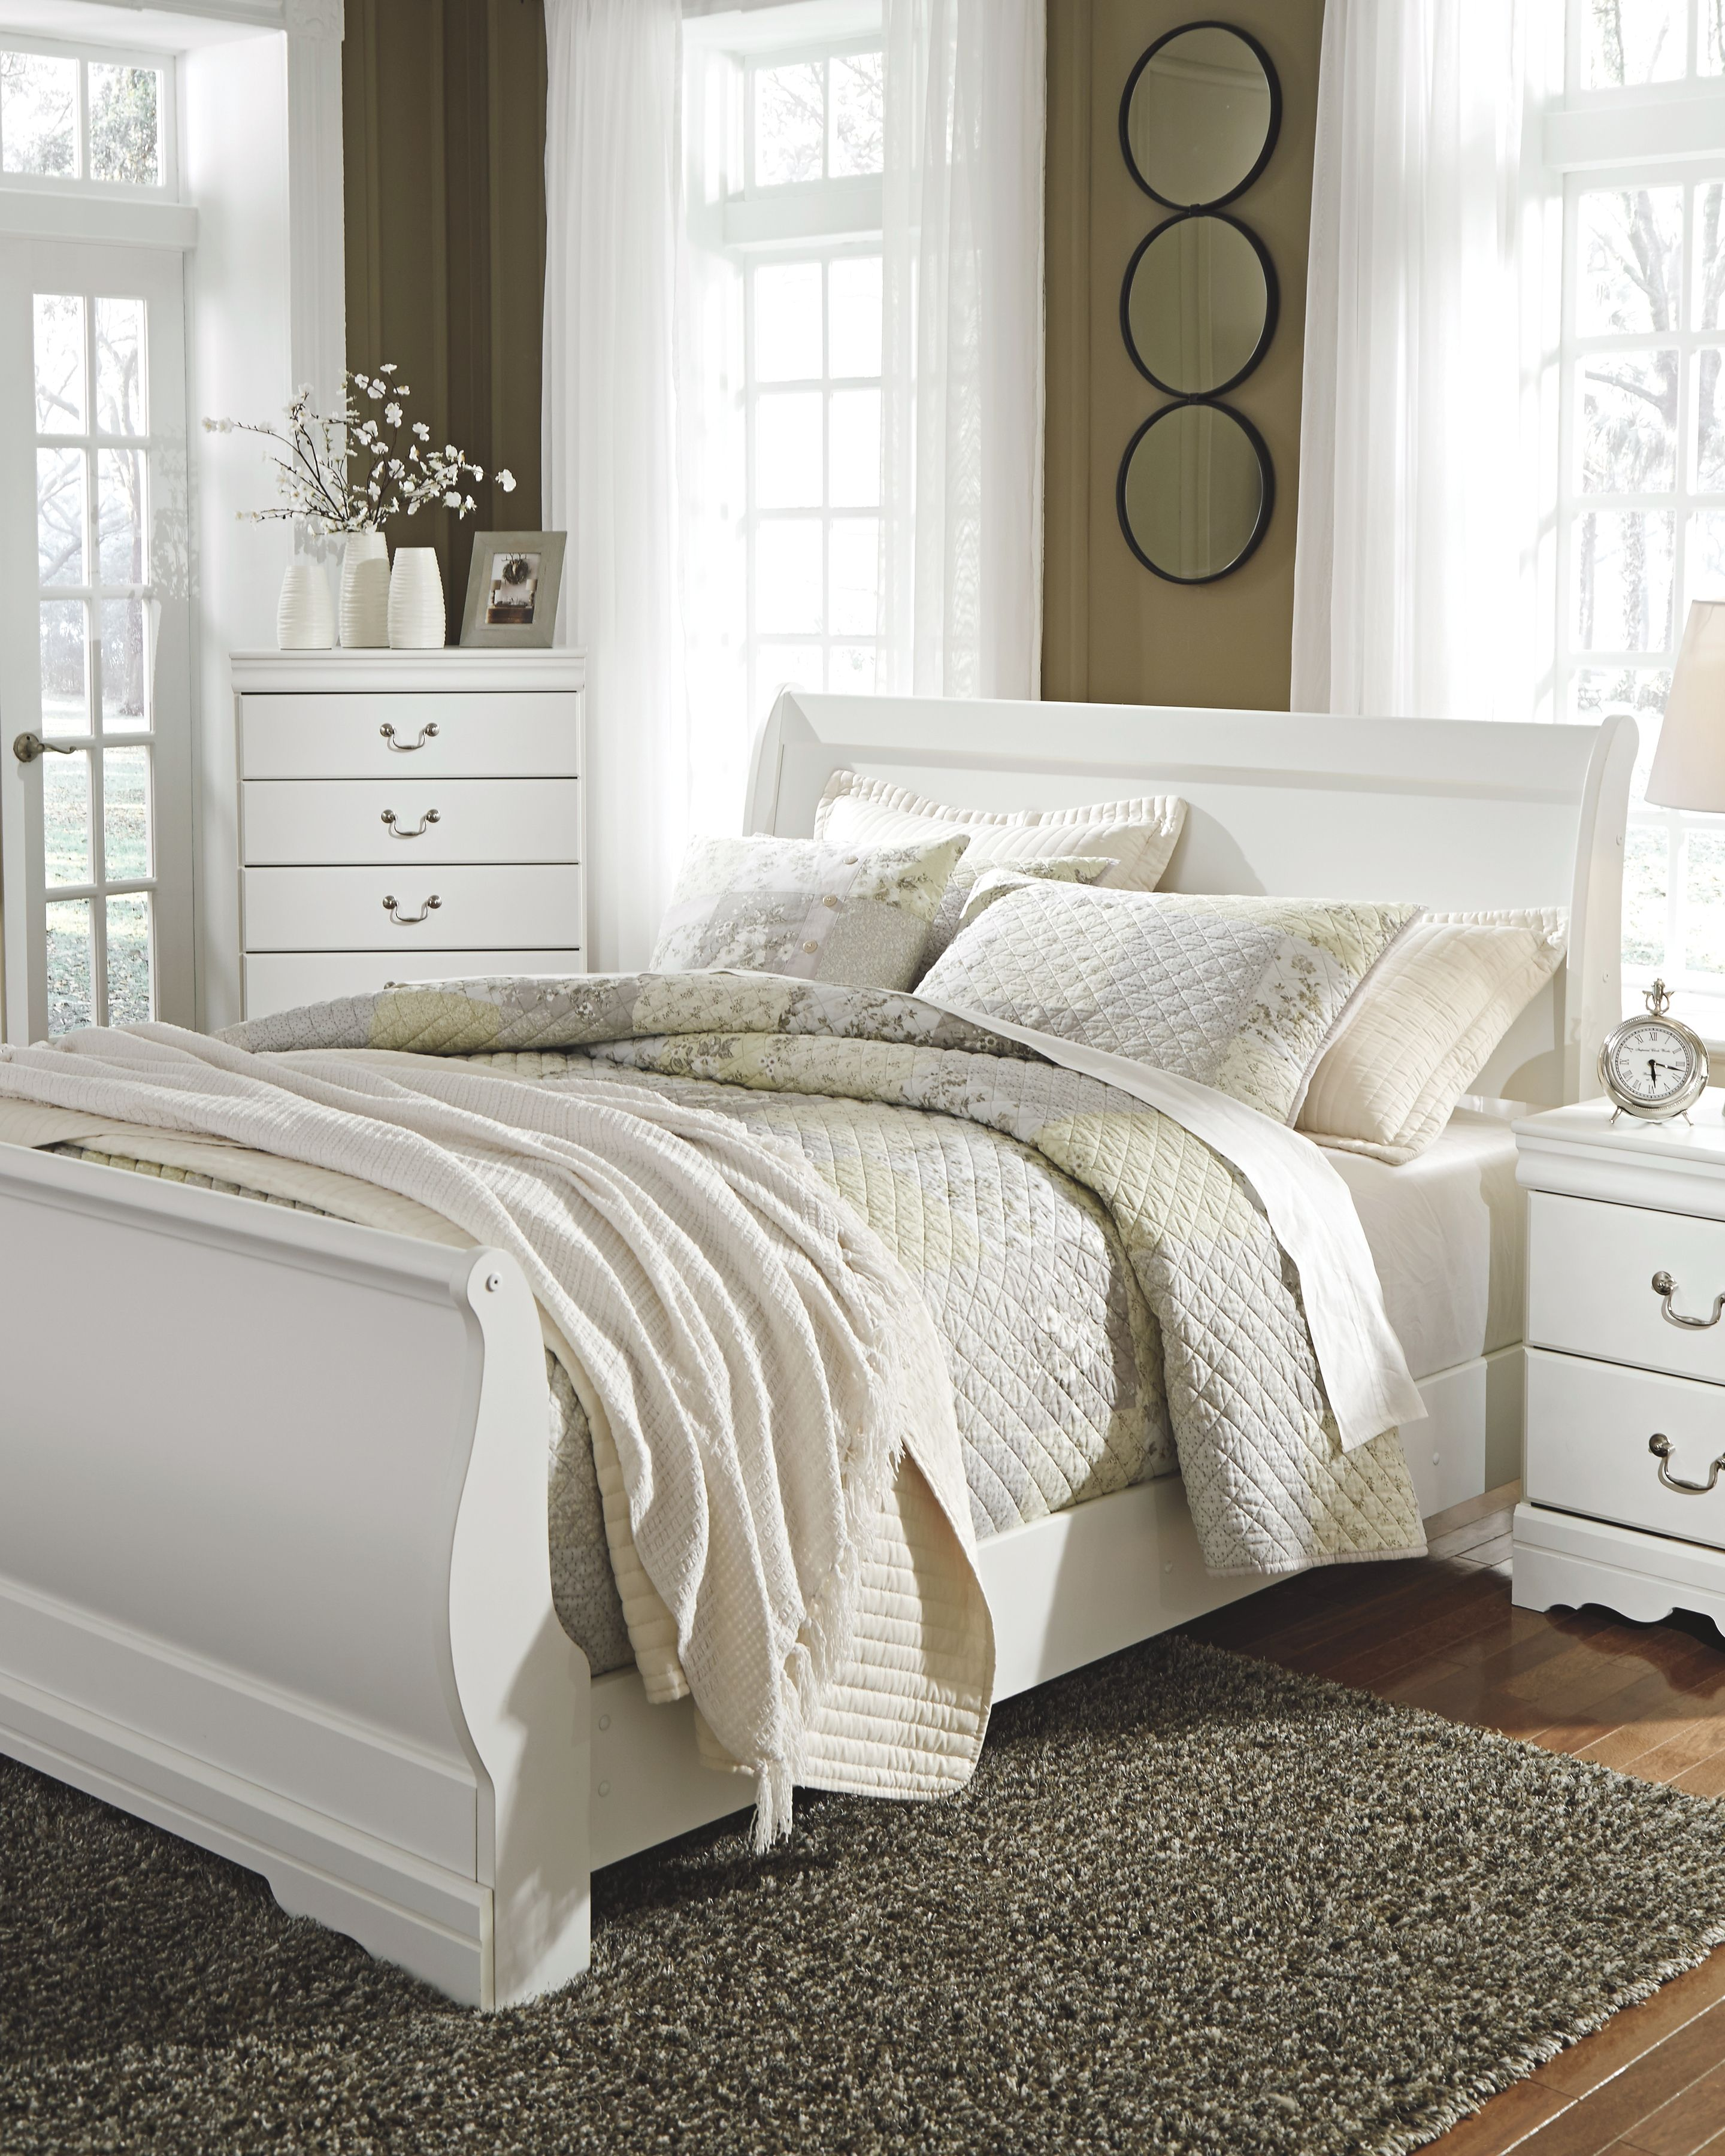 Anarasia Queen Sleigh Headboard, White Panel bed